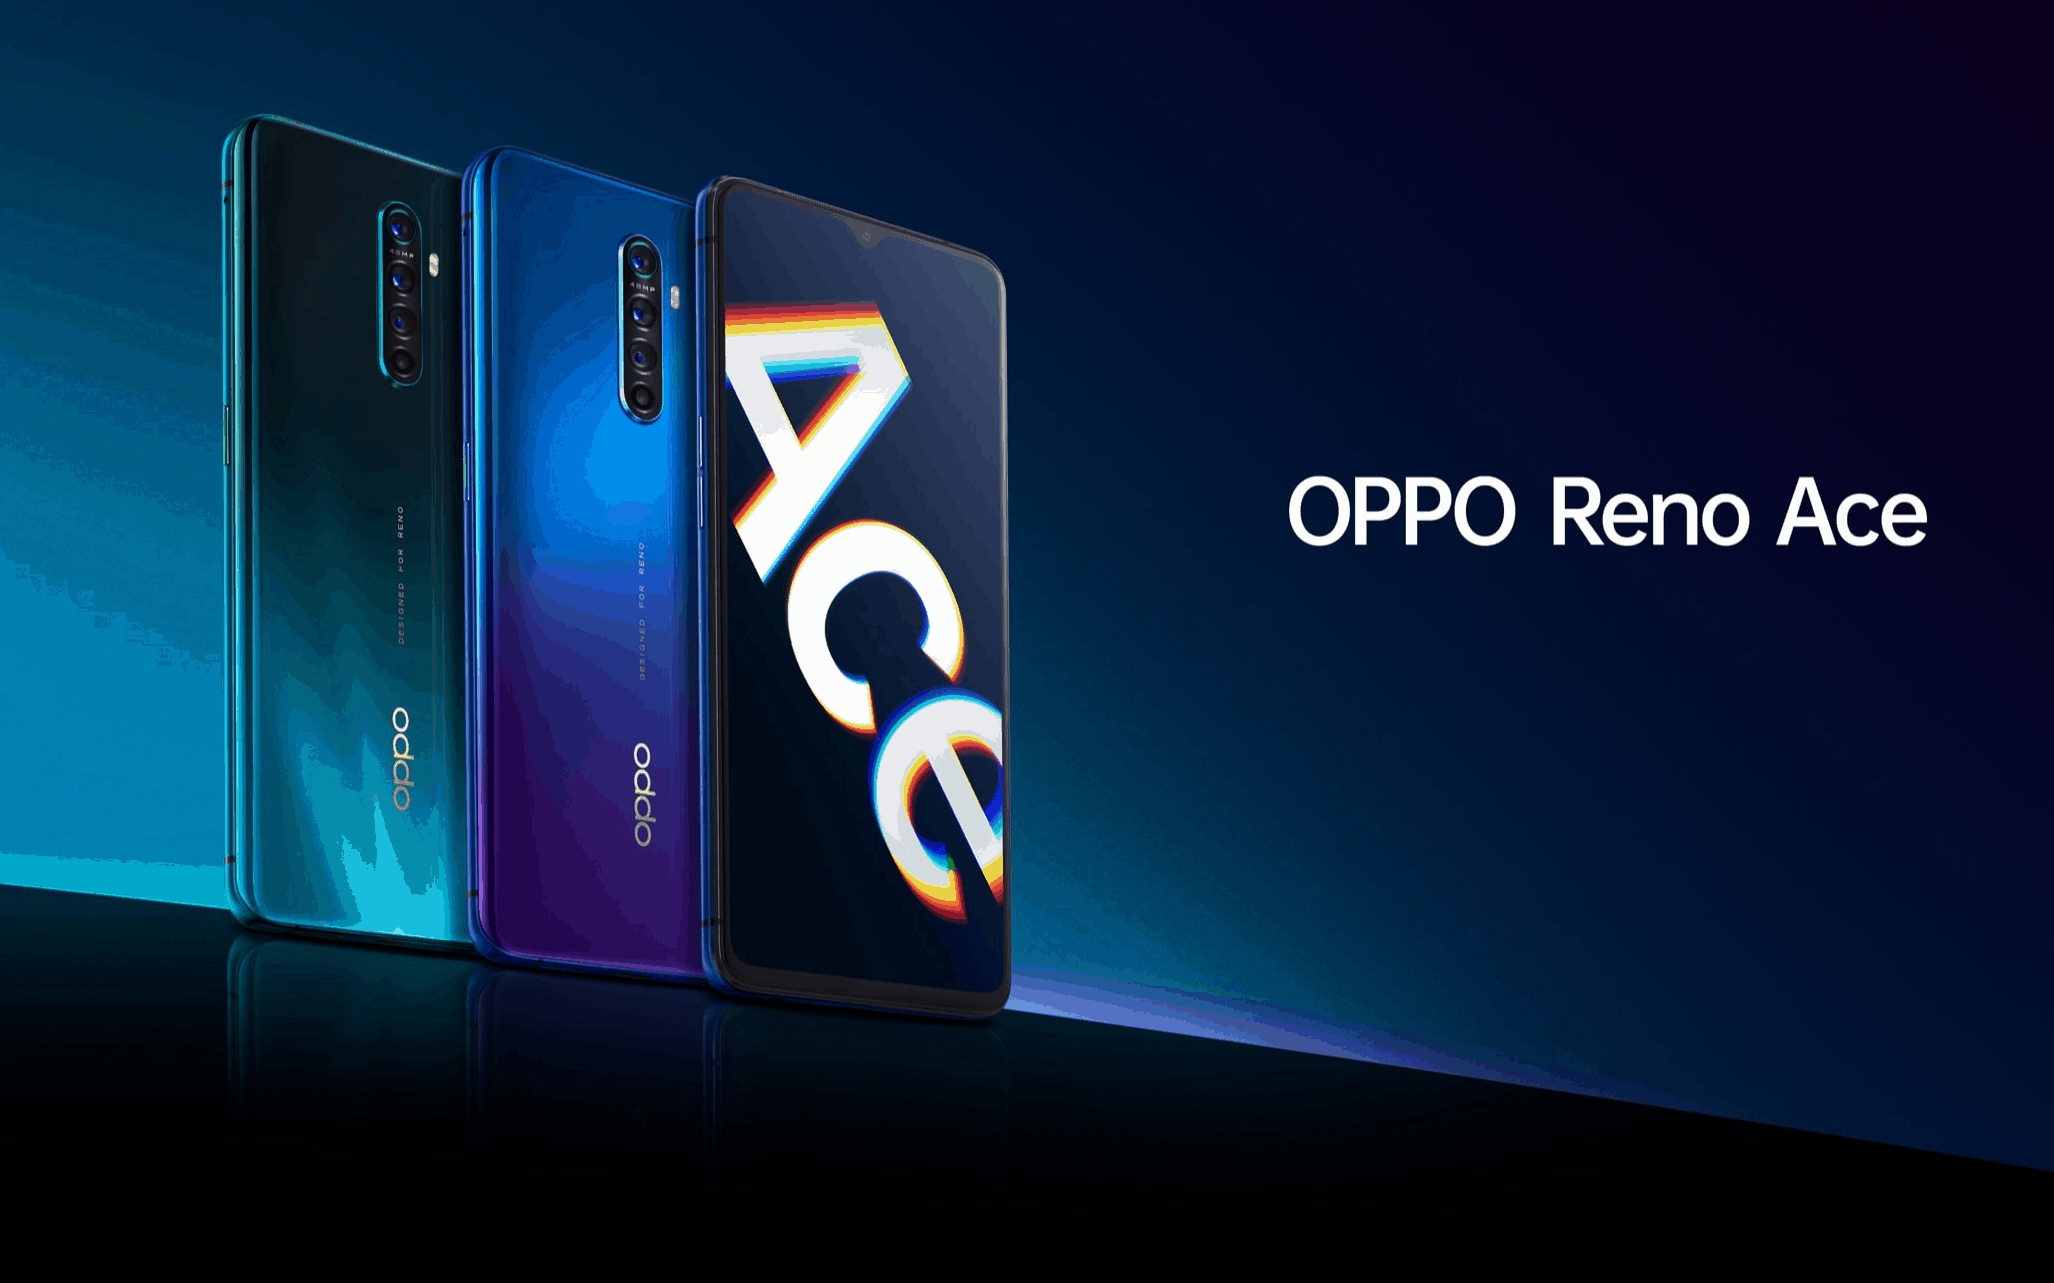 Oppo Reno Ace will come to the UK & EU soon